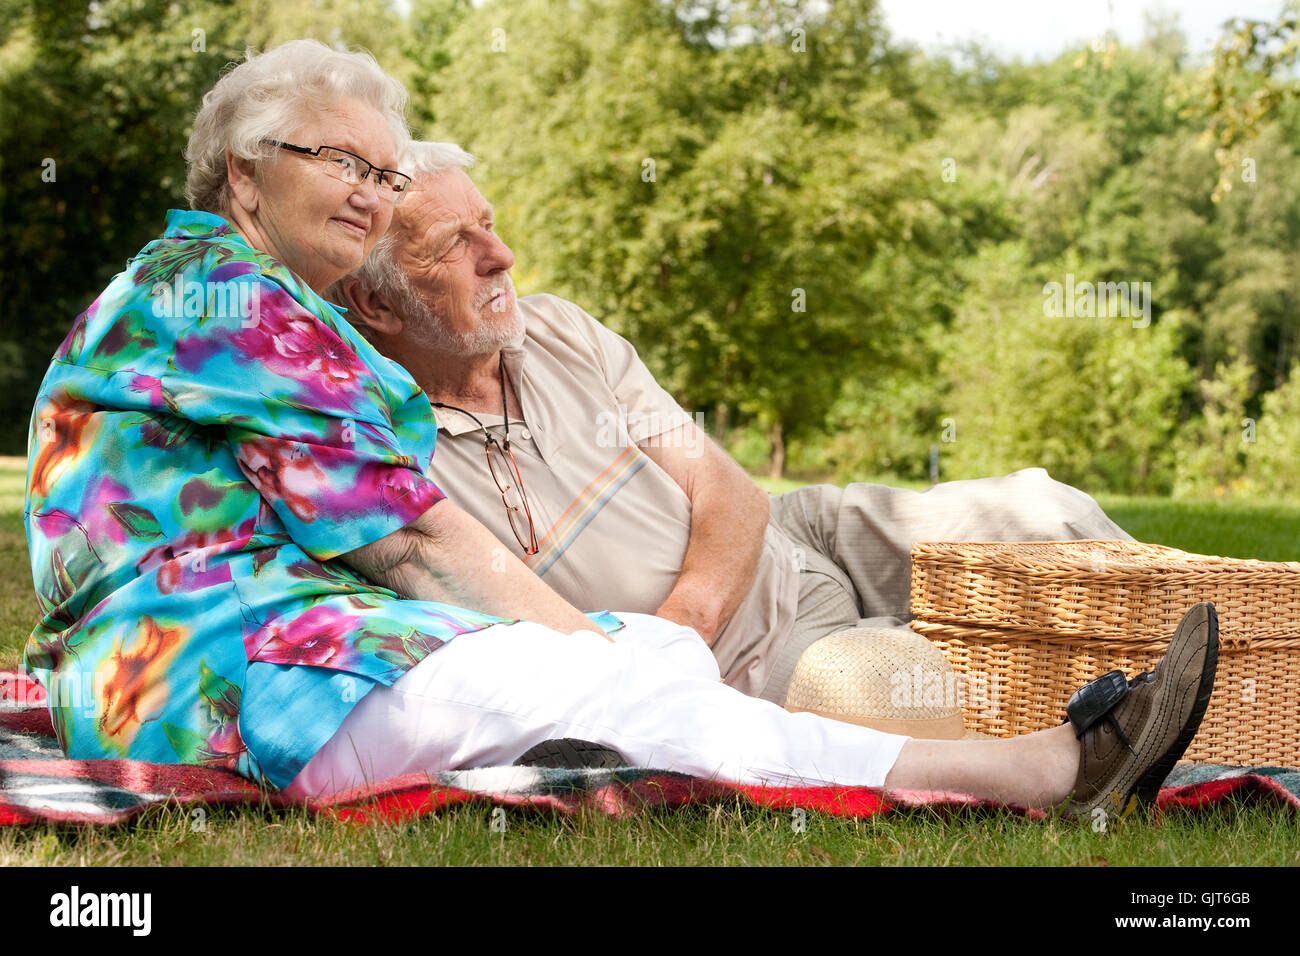 delighted unambitious enthusiastic - Stock Image